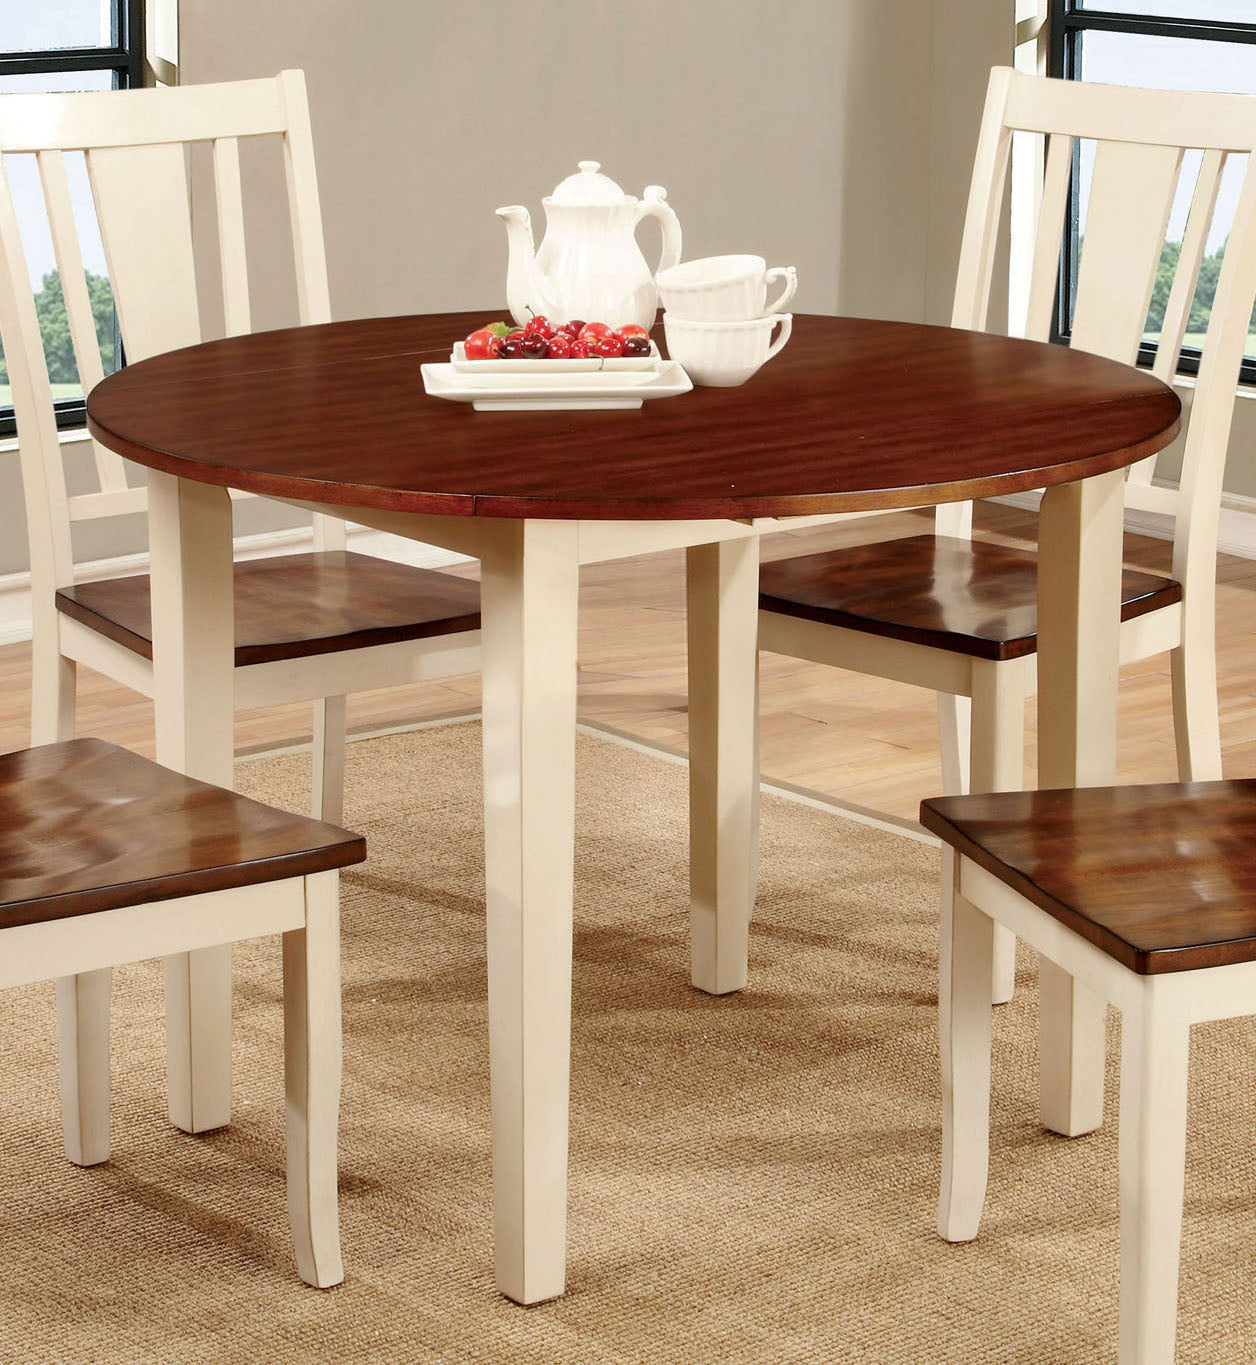 Furniture of America CM3326WC-RT Dover White Cherry Round Dining Table